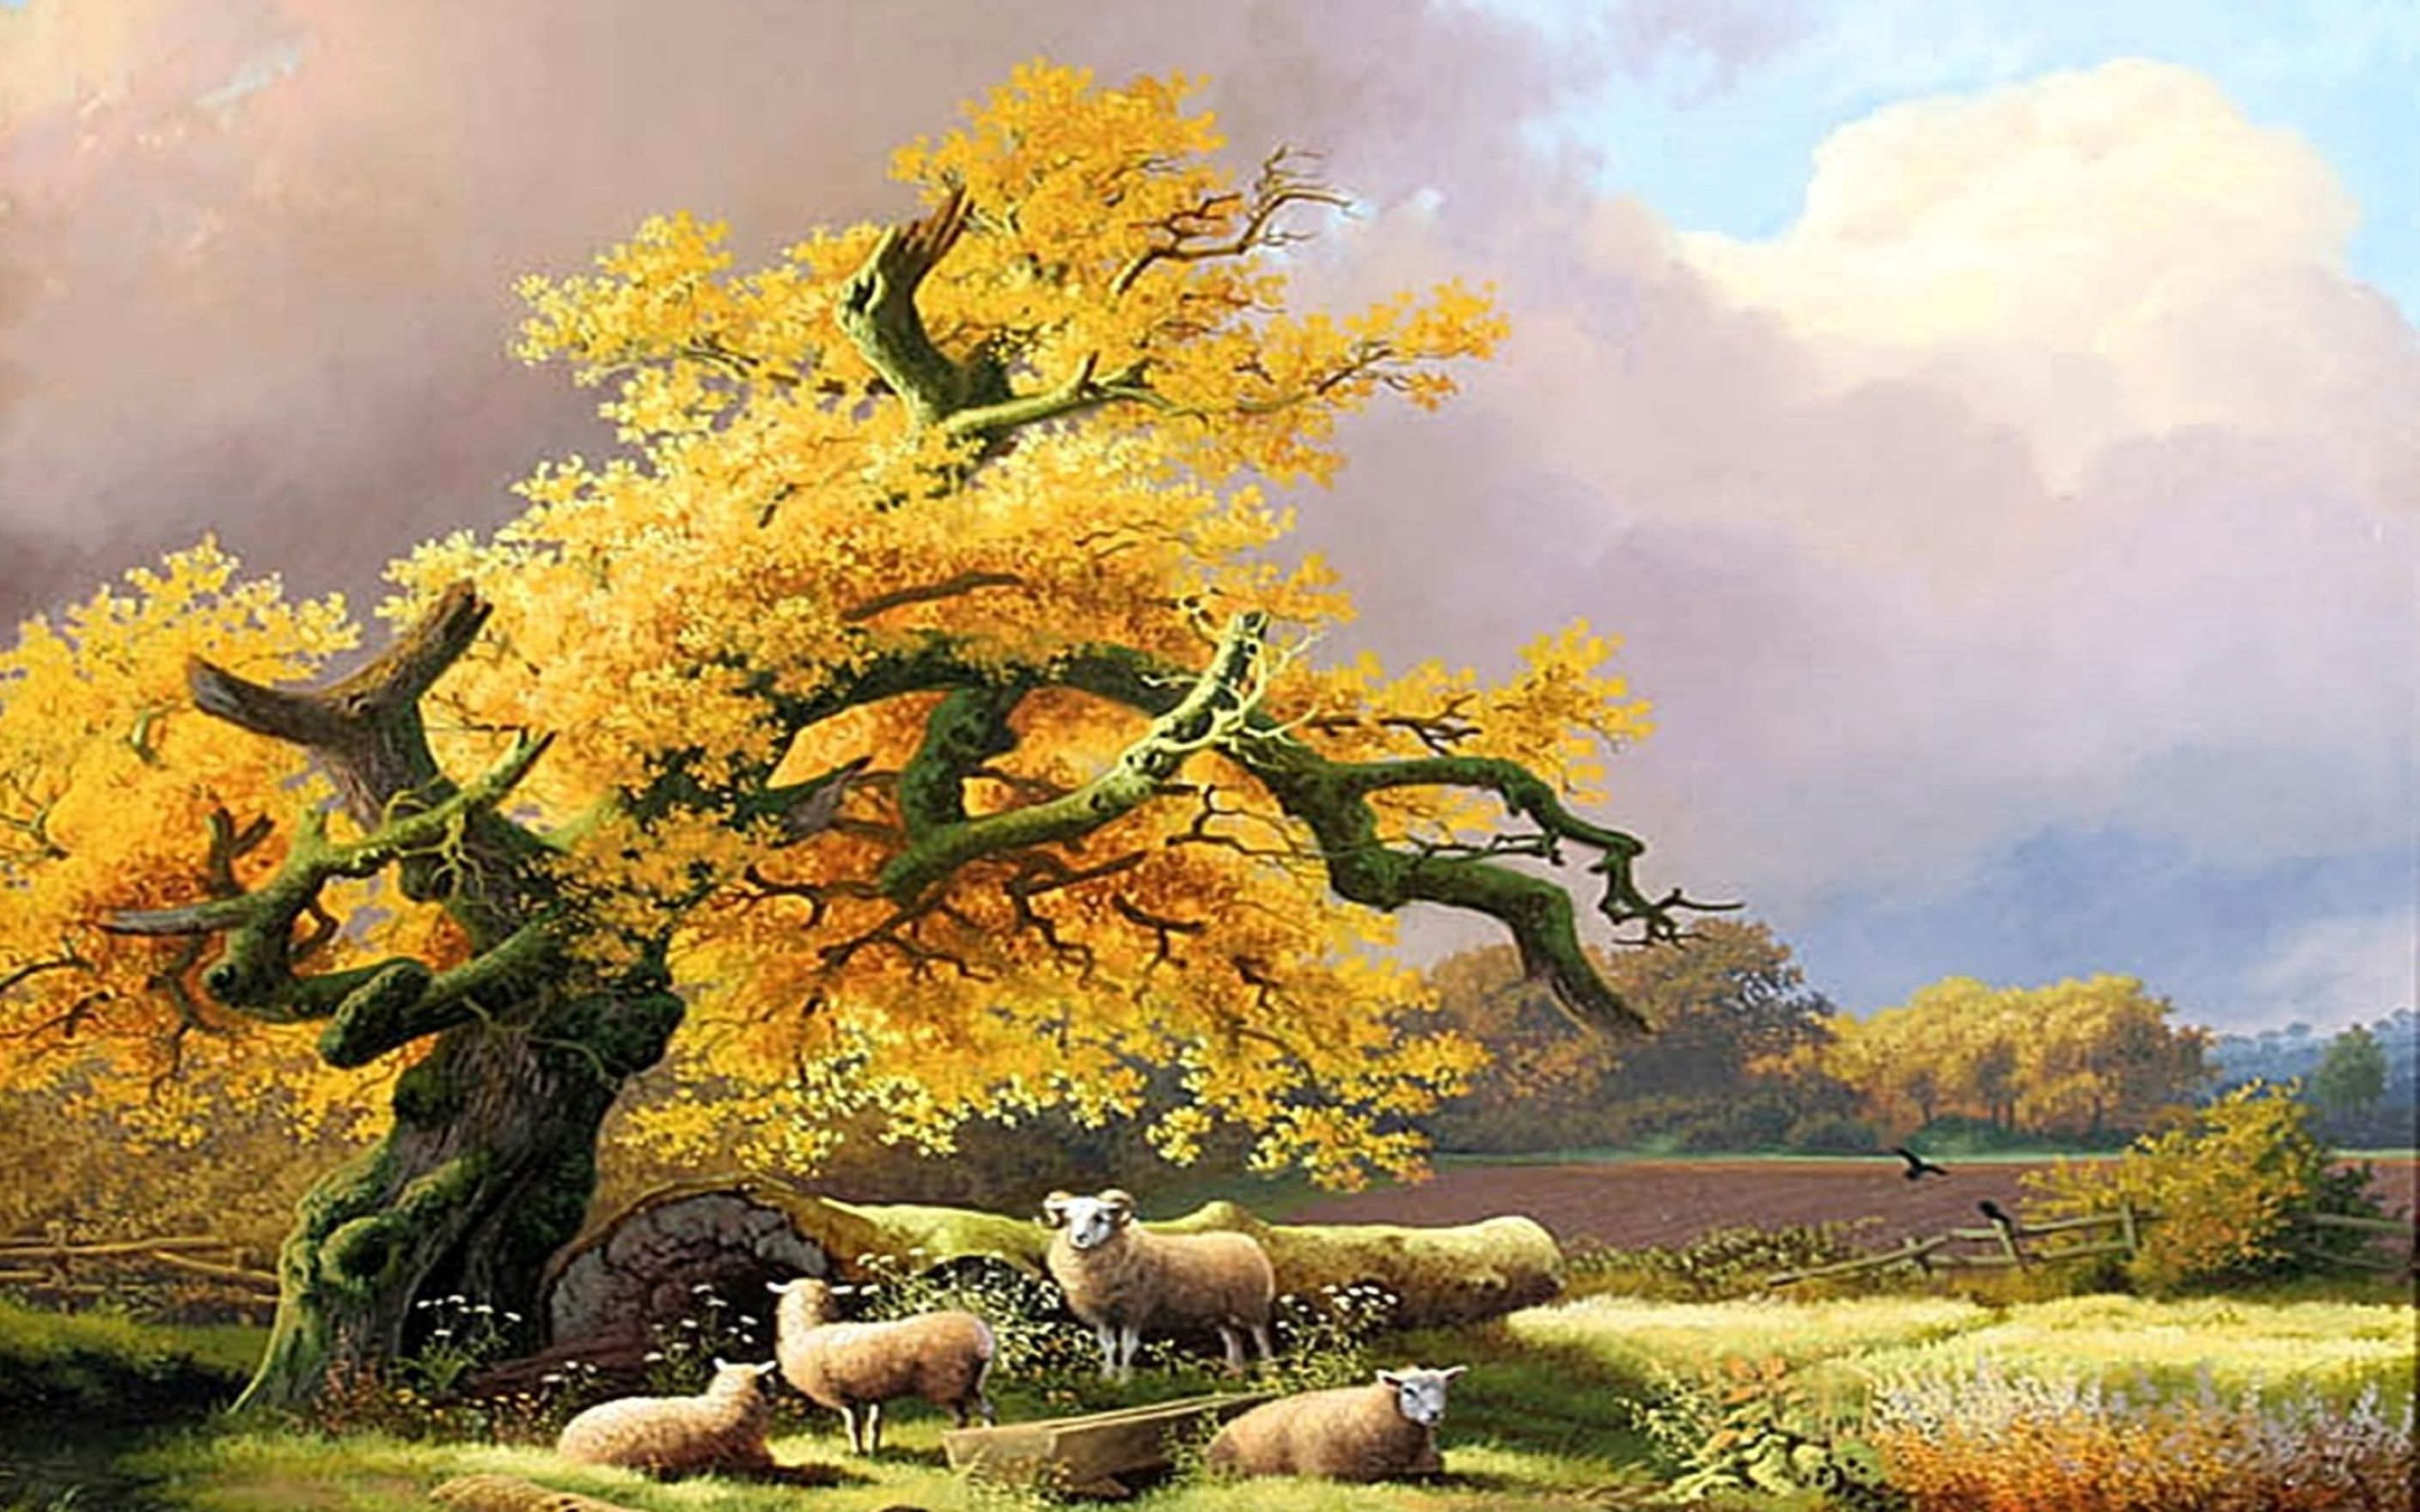 Nature scene art cool animals painting wallpaper desktop for Artiste nature